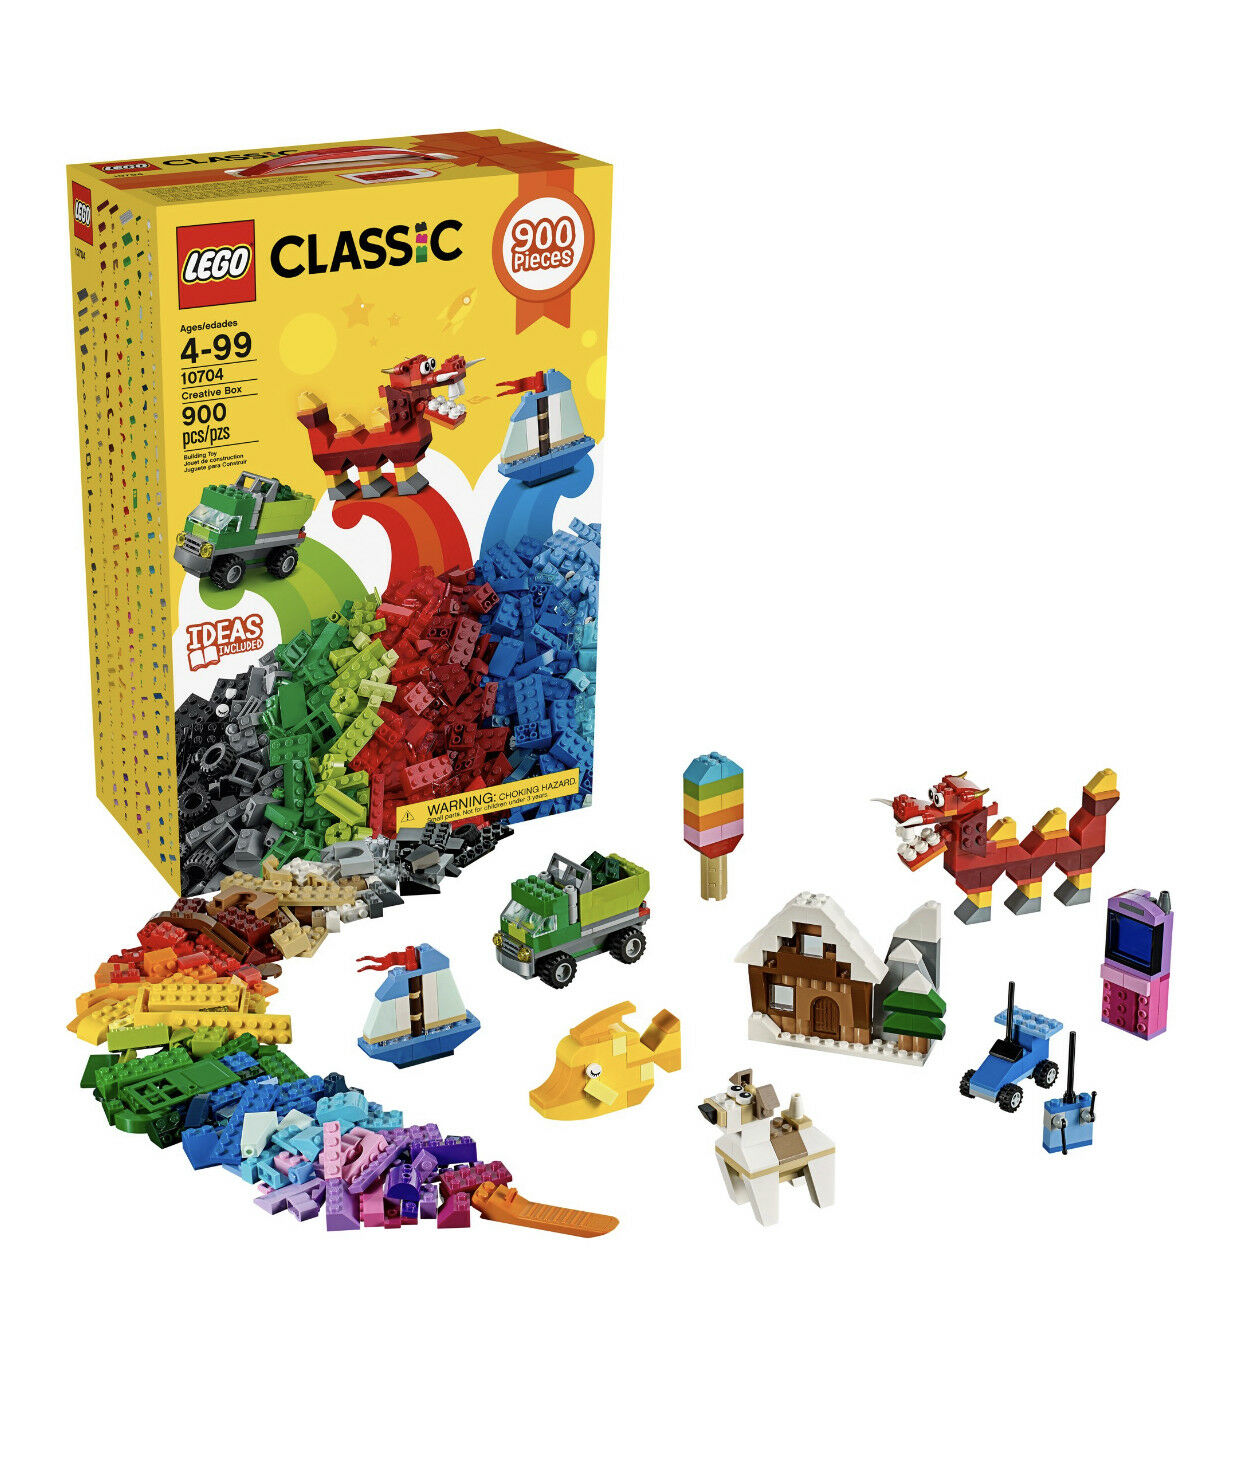 LEGO Classic Creative Building Box Set 900 Pieces (10704) Brand New & Sealed